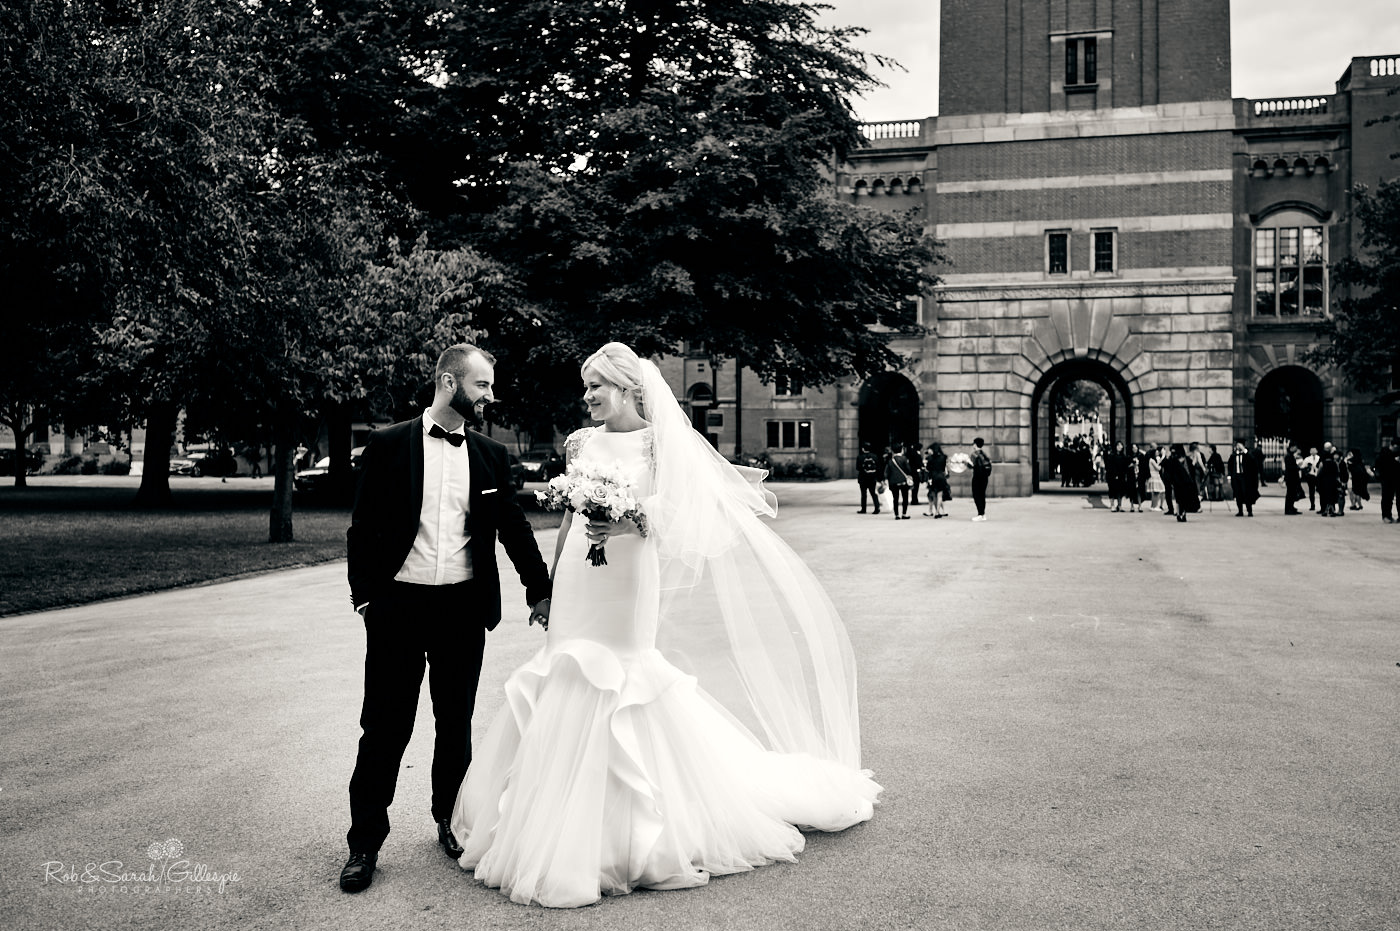 Bride and groom wedding photos inside Birmingham University